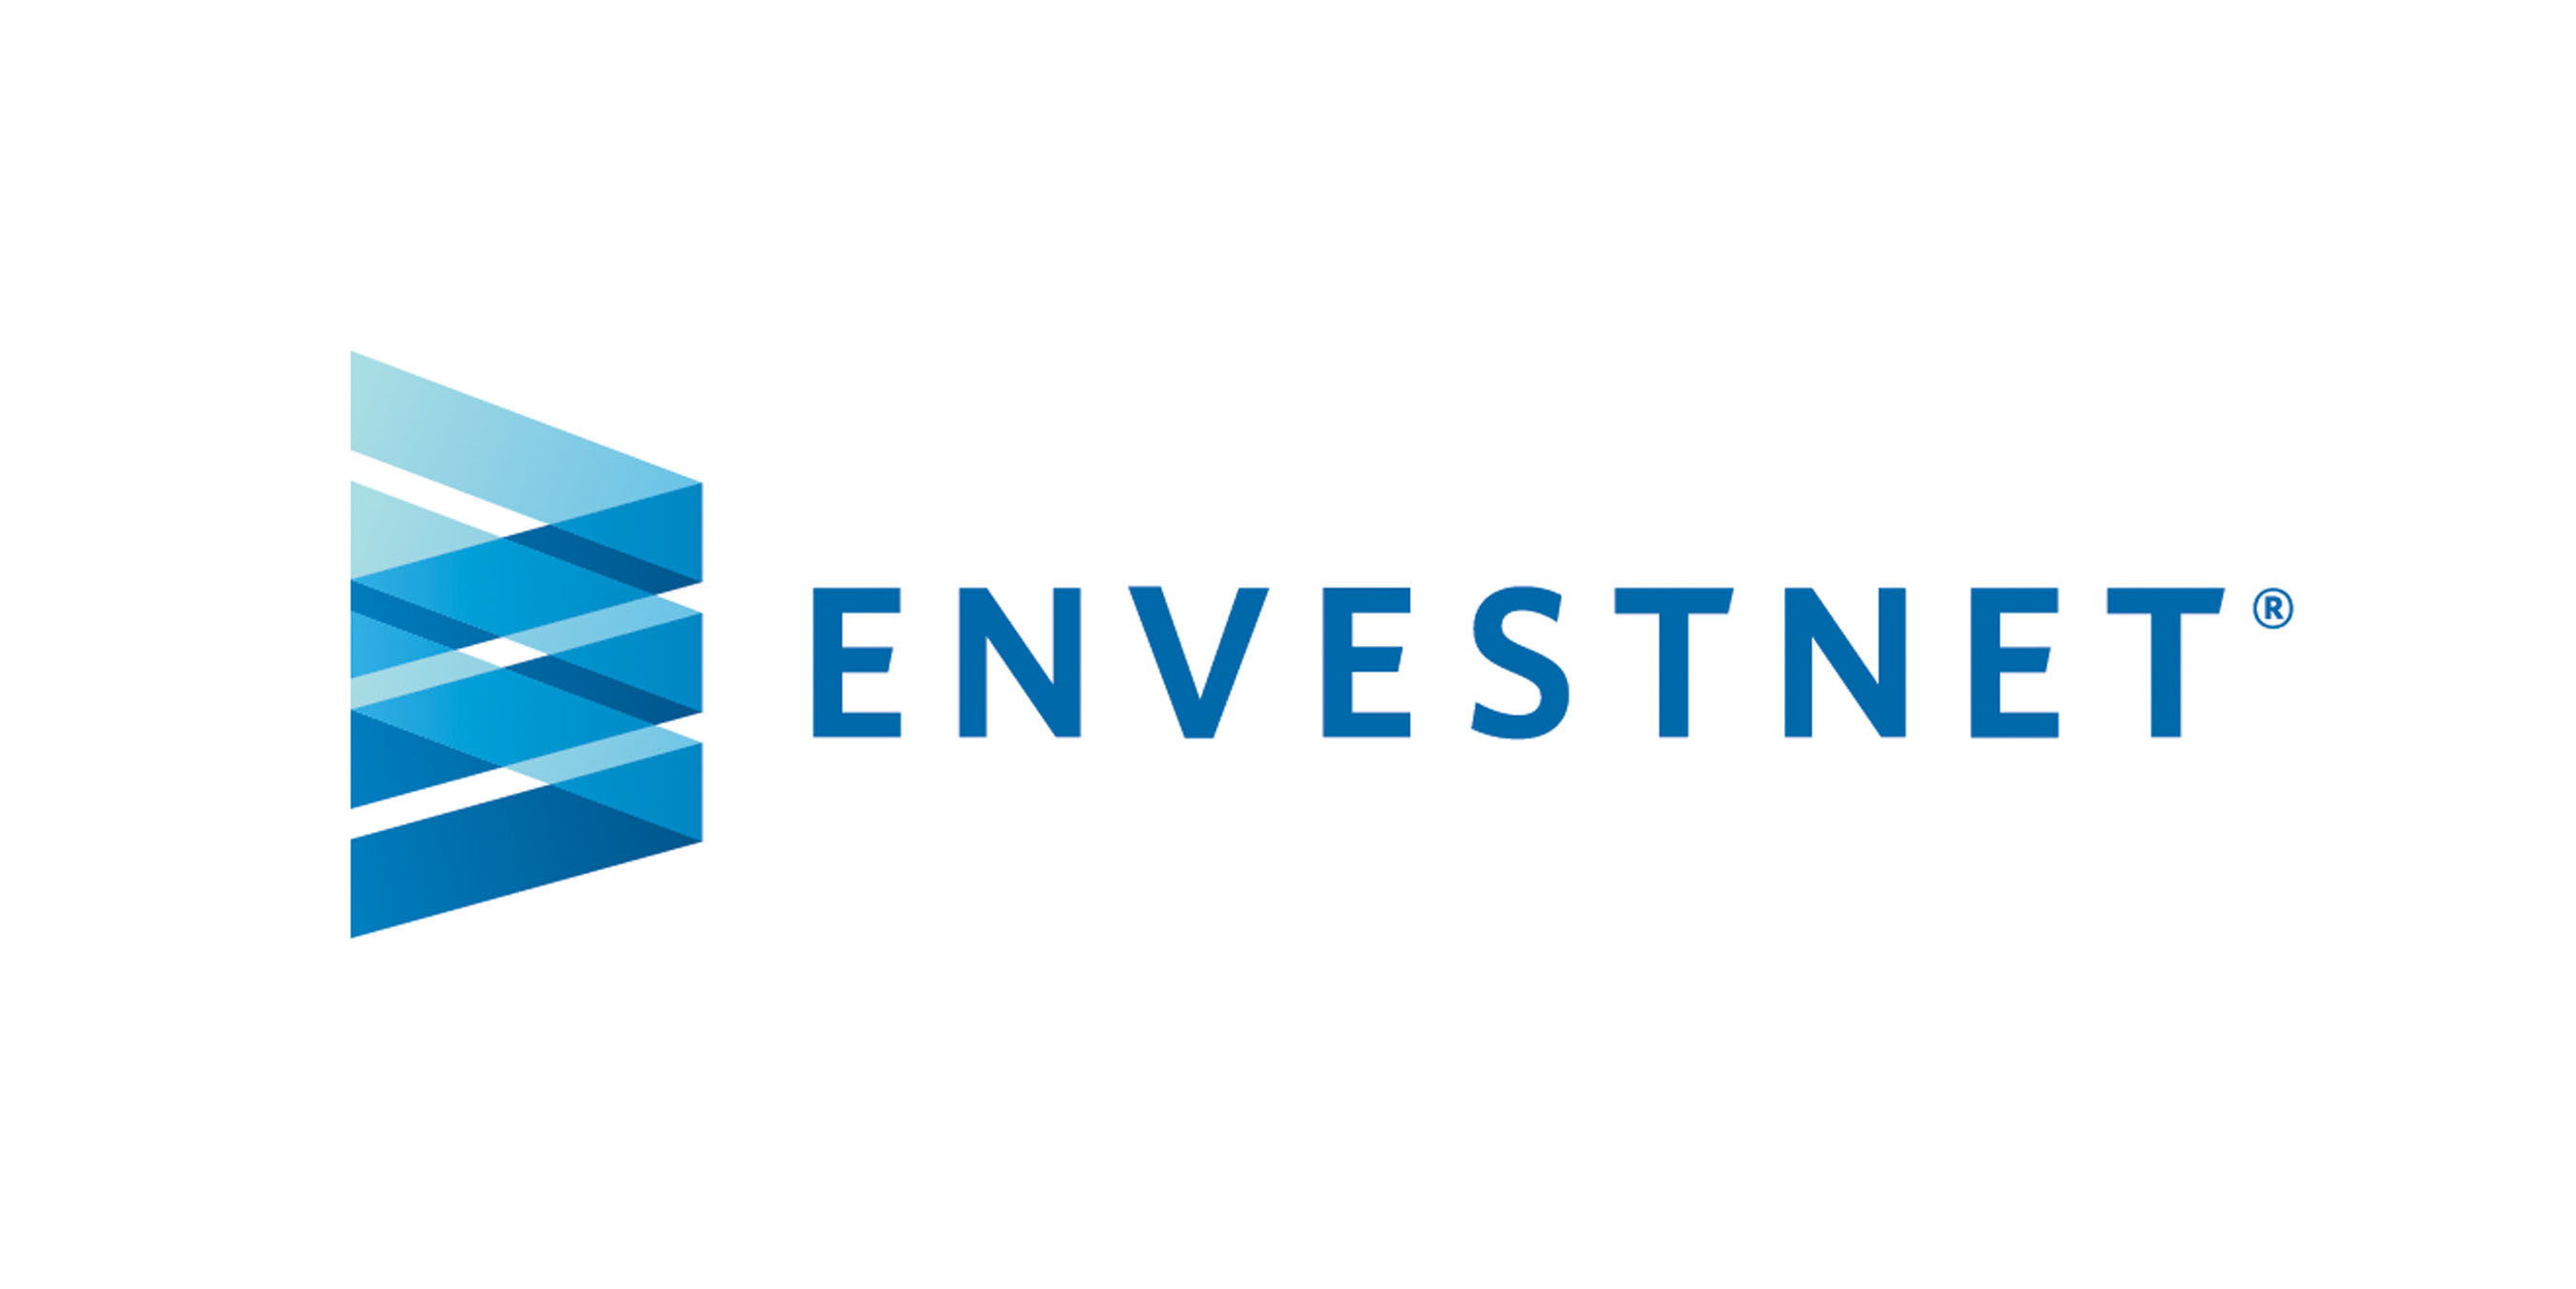 Envestnet, Inc. (NYSE: ENV) is a leading provider of unified wealth management technology and services to investment advisors. Our open-architecture platforms unify and fortify the wealth management process, delivering unparalleled flexibility, accuracy, performance and value. Envestnet solutions enable the transformation of wealth management into a transparent, independent, objective and fully-aligned standard of care, and empower advisors to deliver better outcomes. For more information on Envestnet, please visit www.envestnet.com.